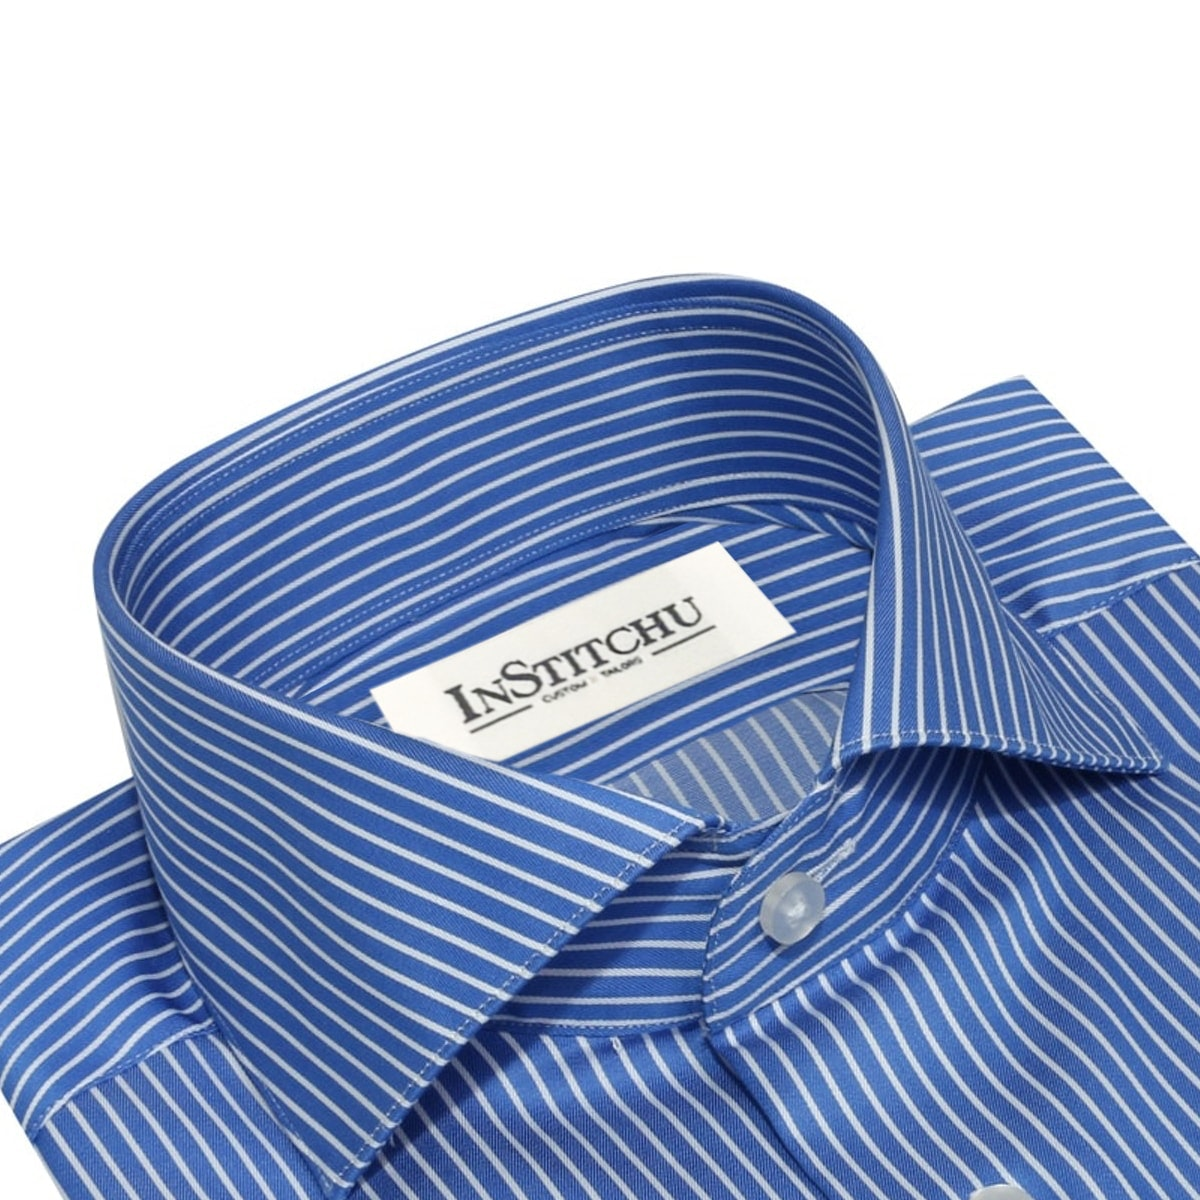 InStitchu Collection The Emeralda Blue Stripe Shirt